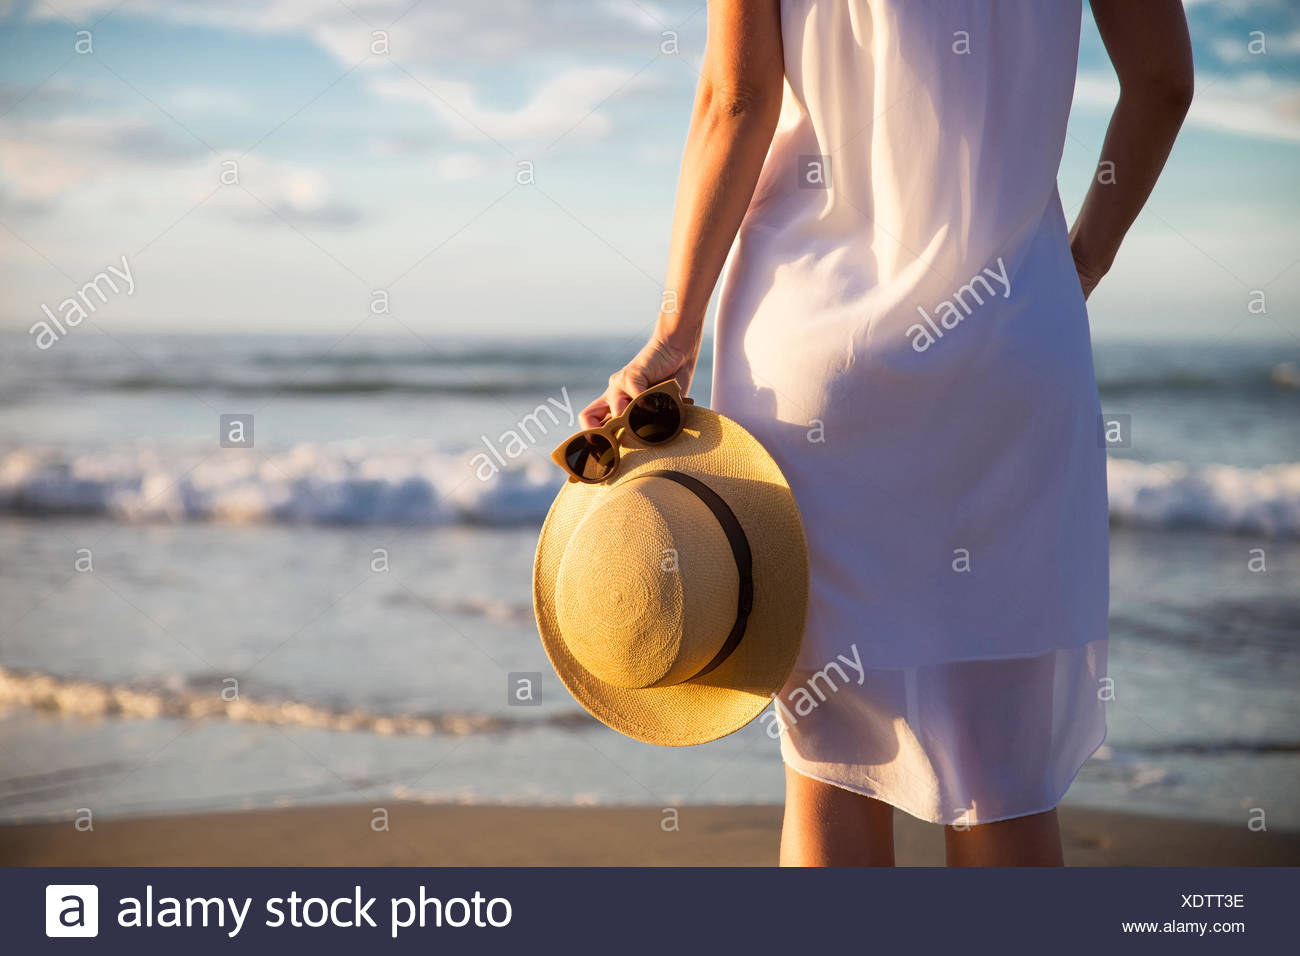 Rear view of woman in white dress standing on beach and holding hat - Stock Image